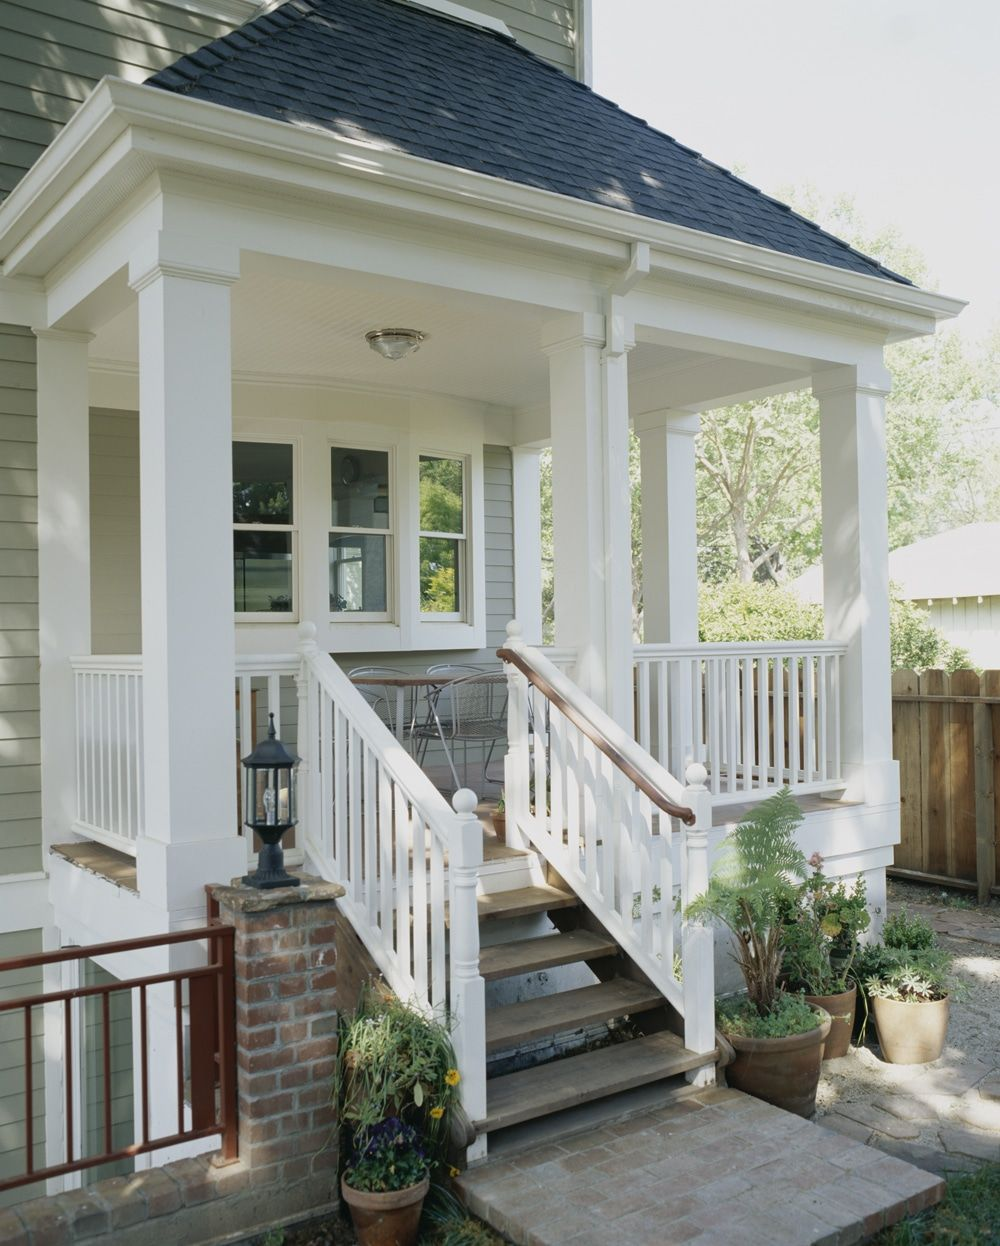 Trimmed Out Porch With Column Wraps